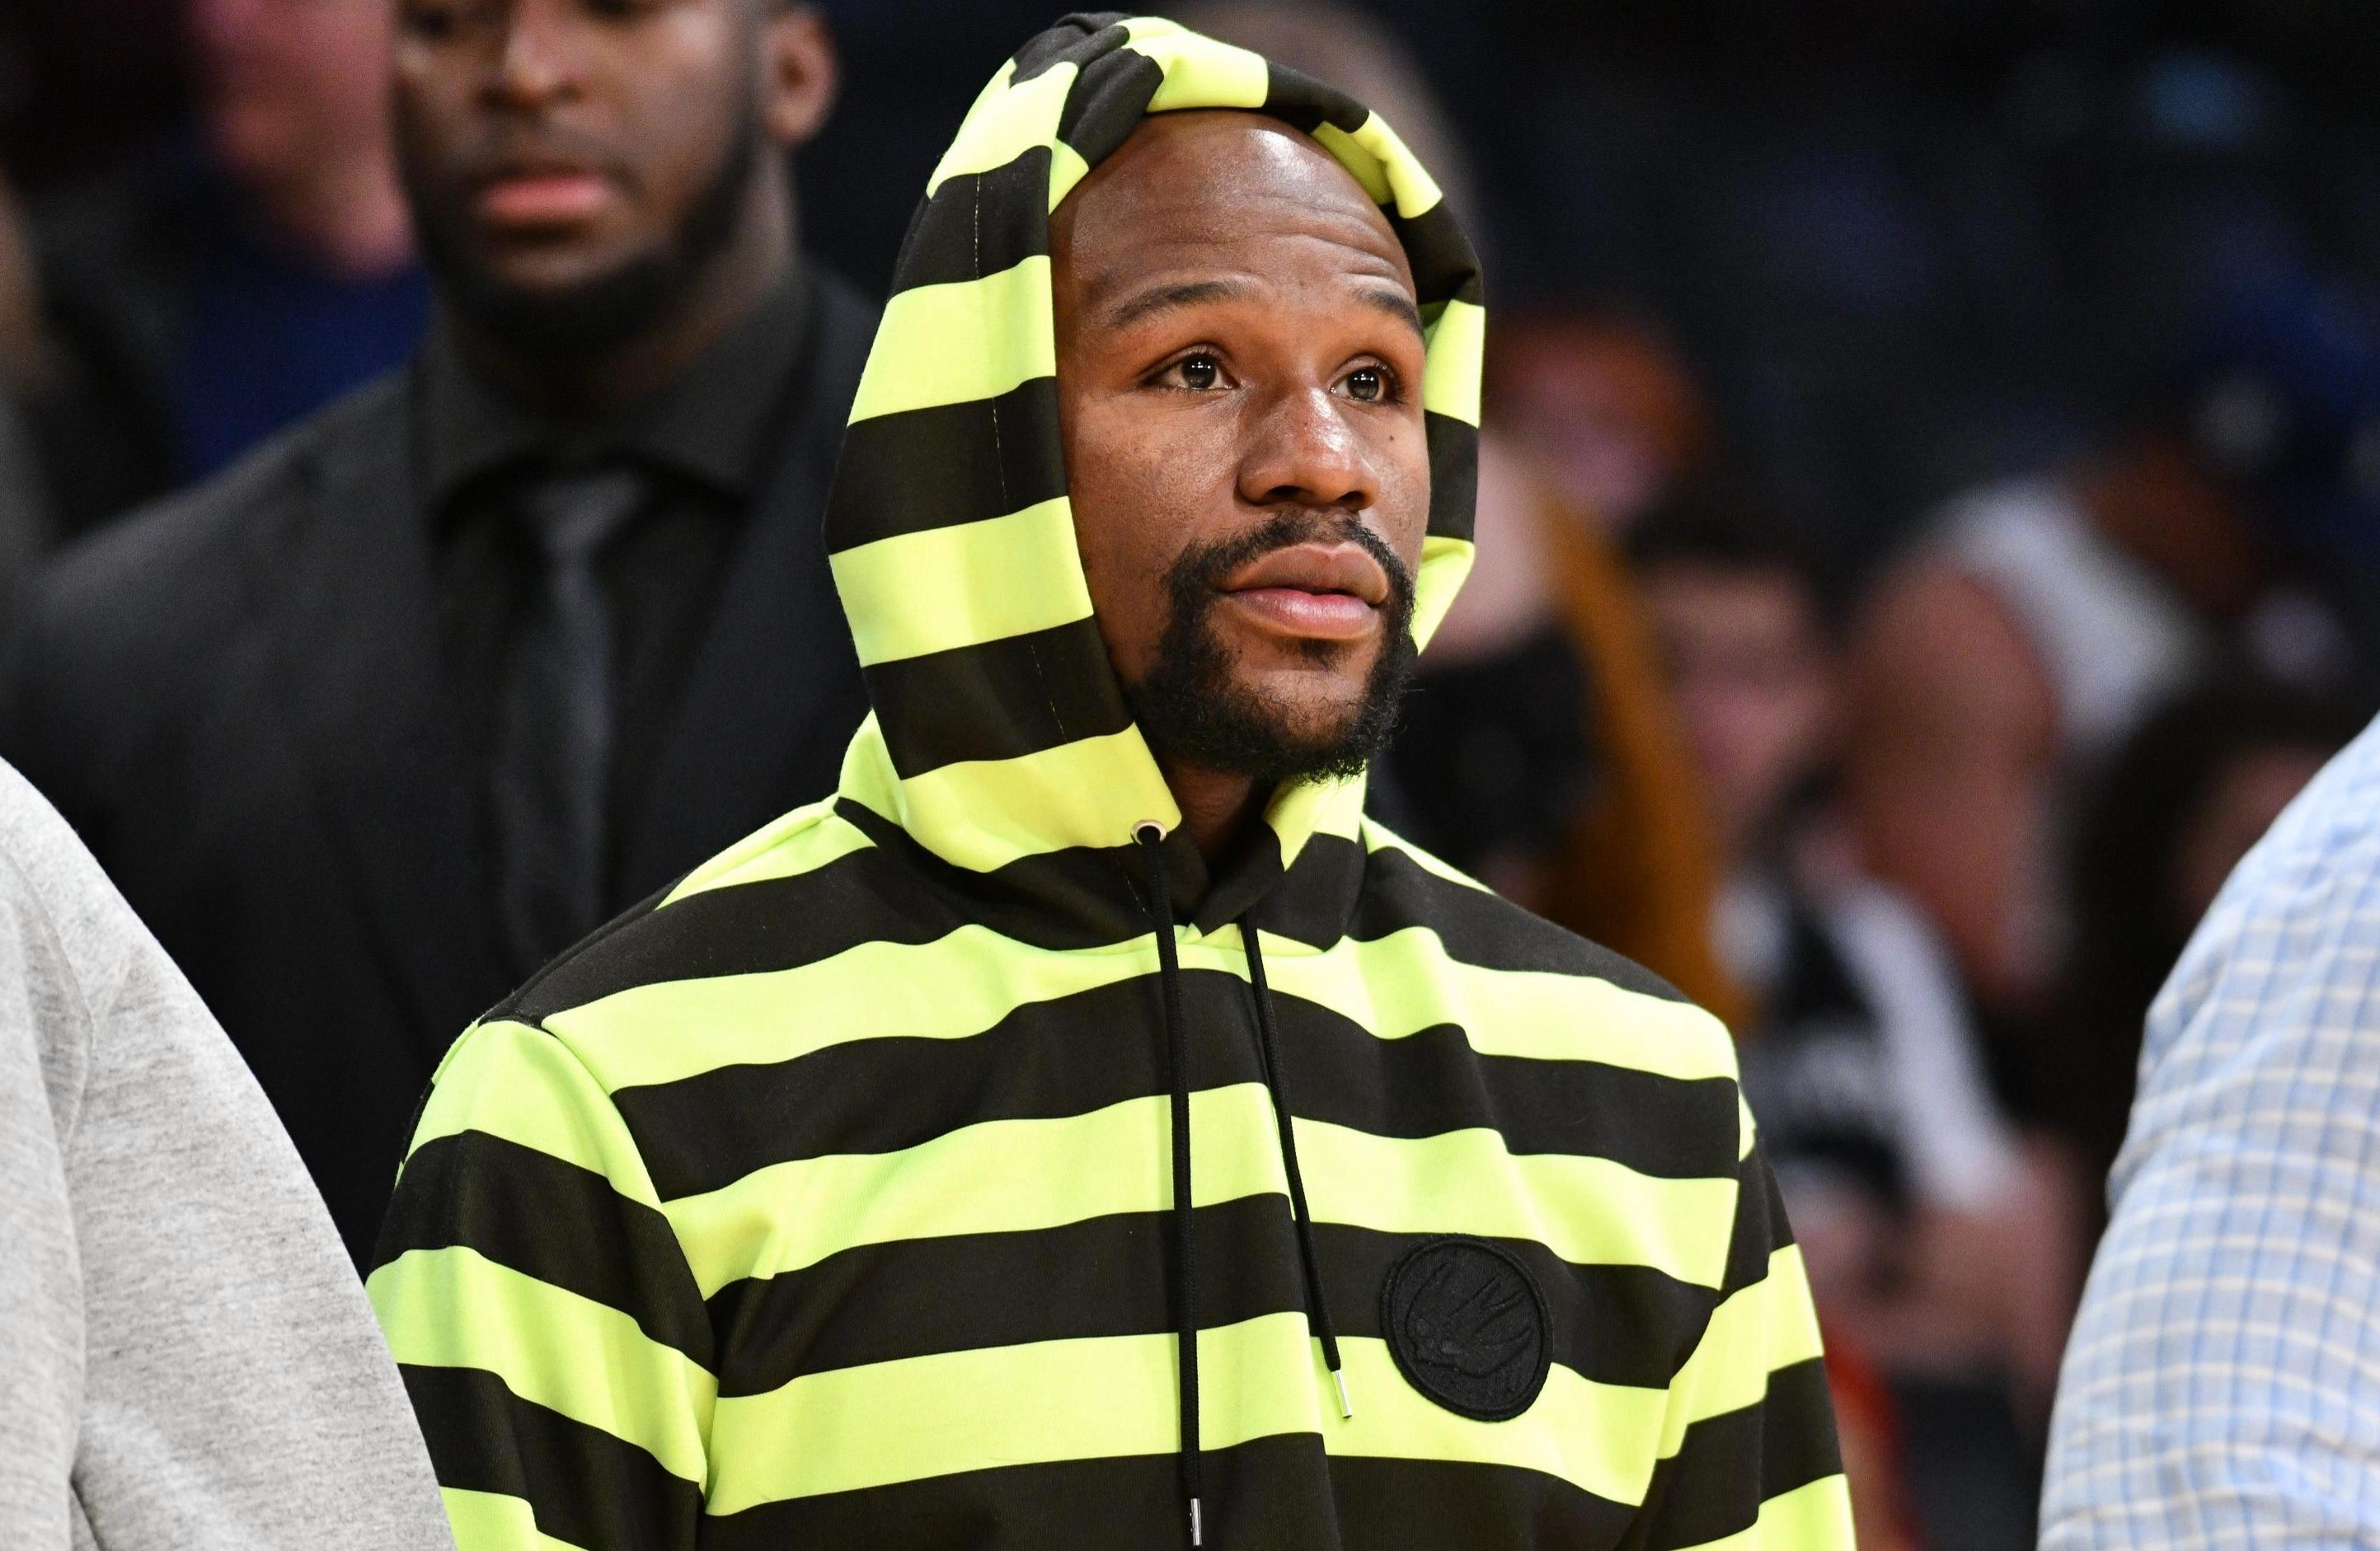 Mayweather has welcomed talk of a bout against UFC star Khabib